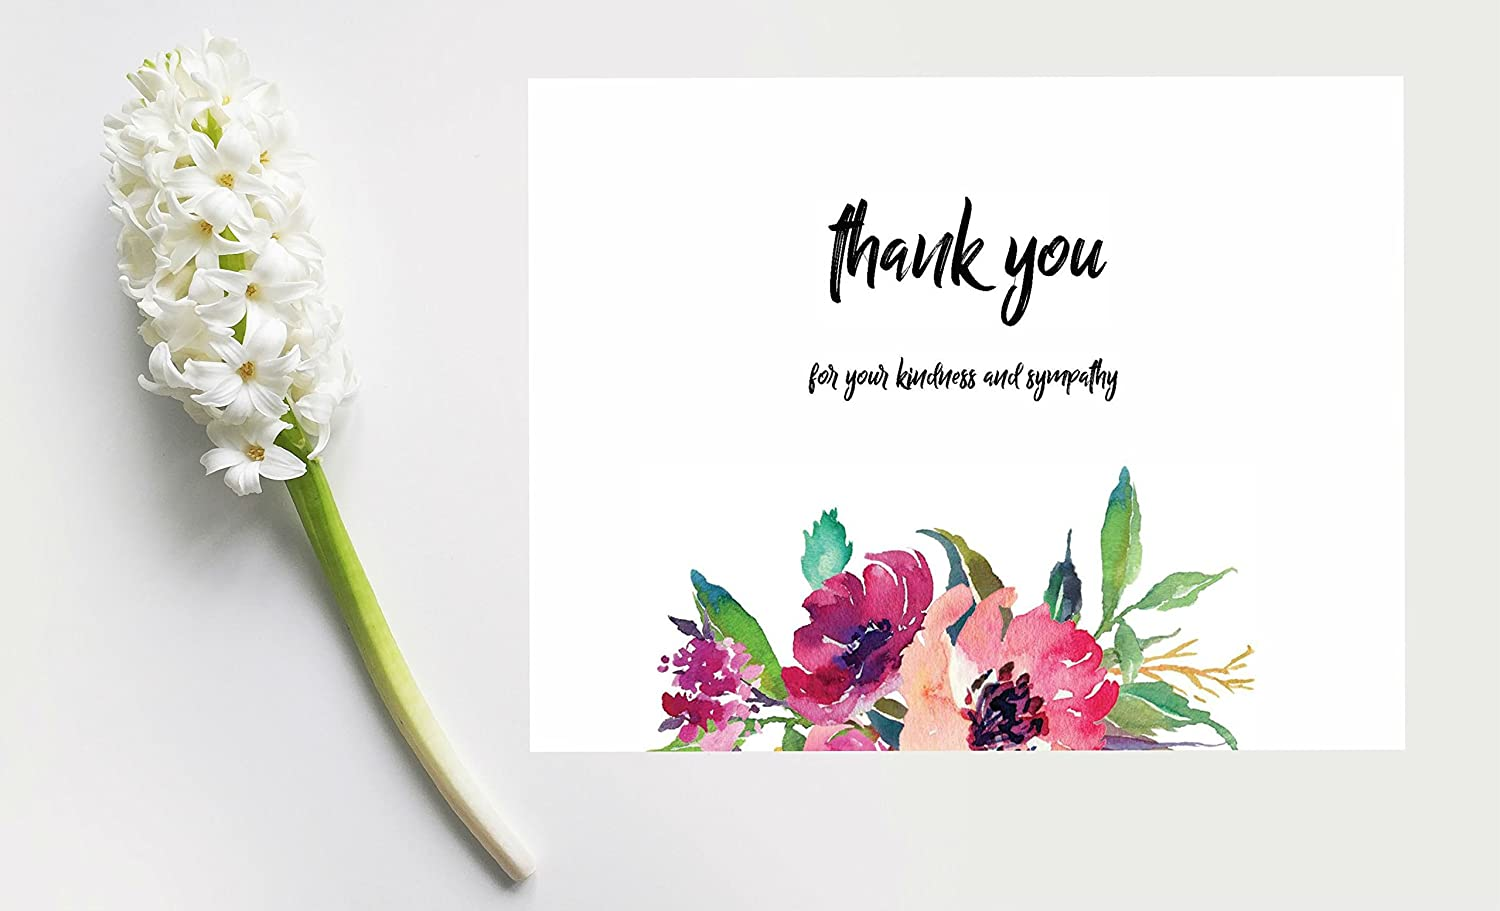 Amazon 20 flower funeral celebration of life thank you cards amazon 20 flower funeral celebration of life thank you cards with envelopes sympathy floral thank you cards office products izmirmasajfo